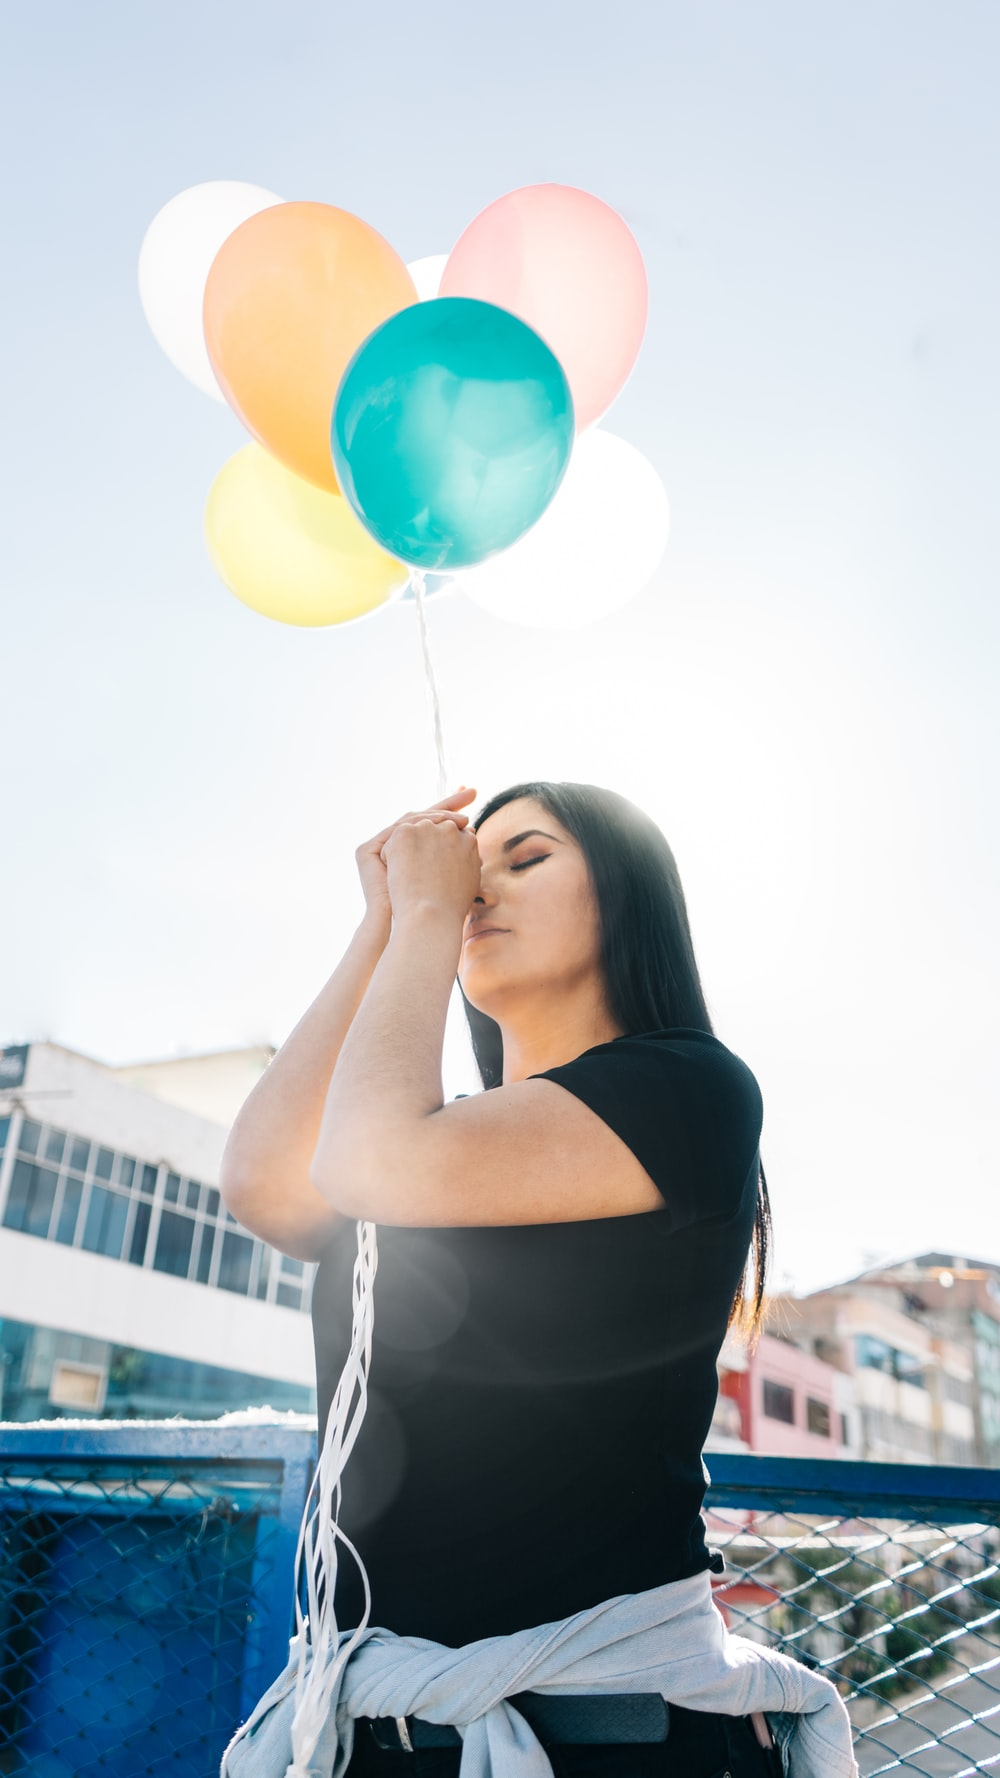 woman in black top holding balloons